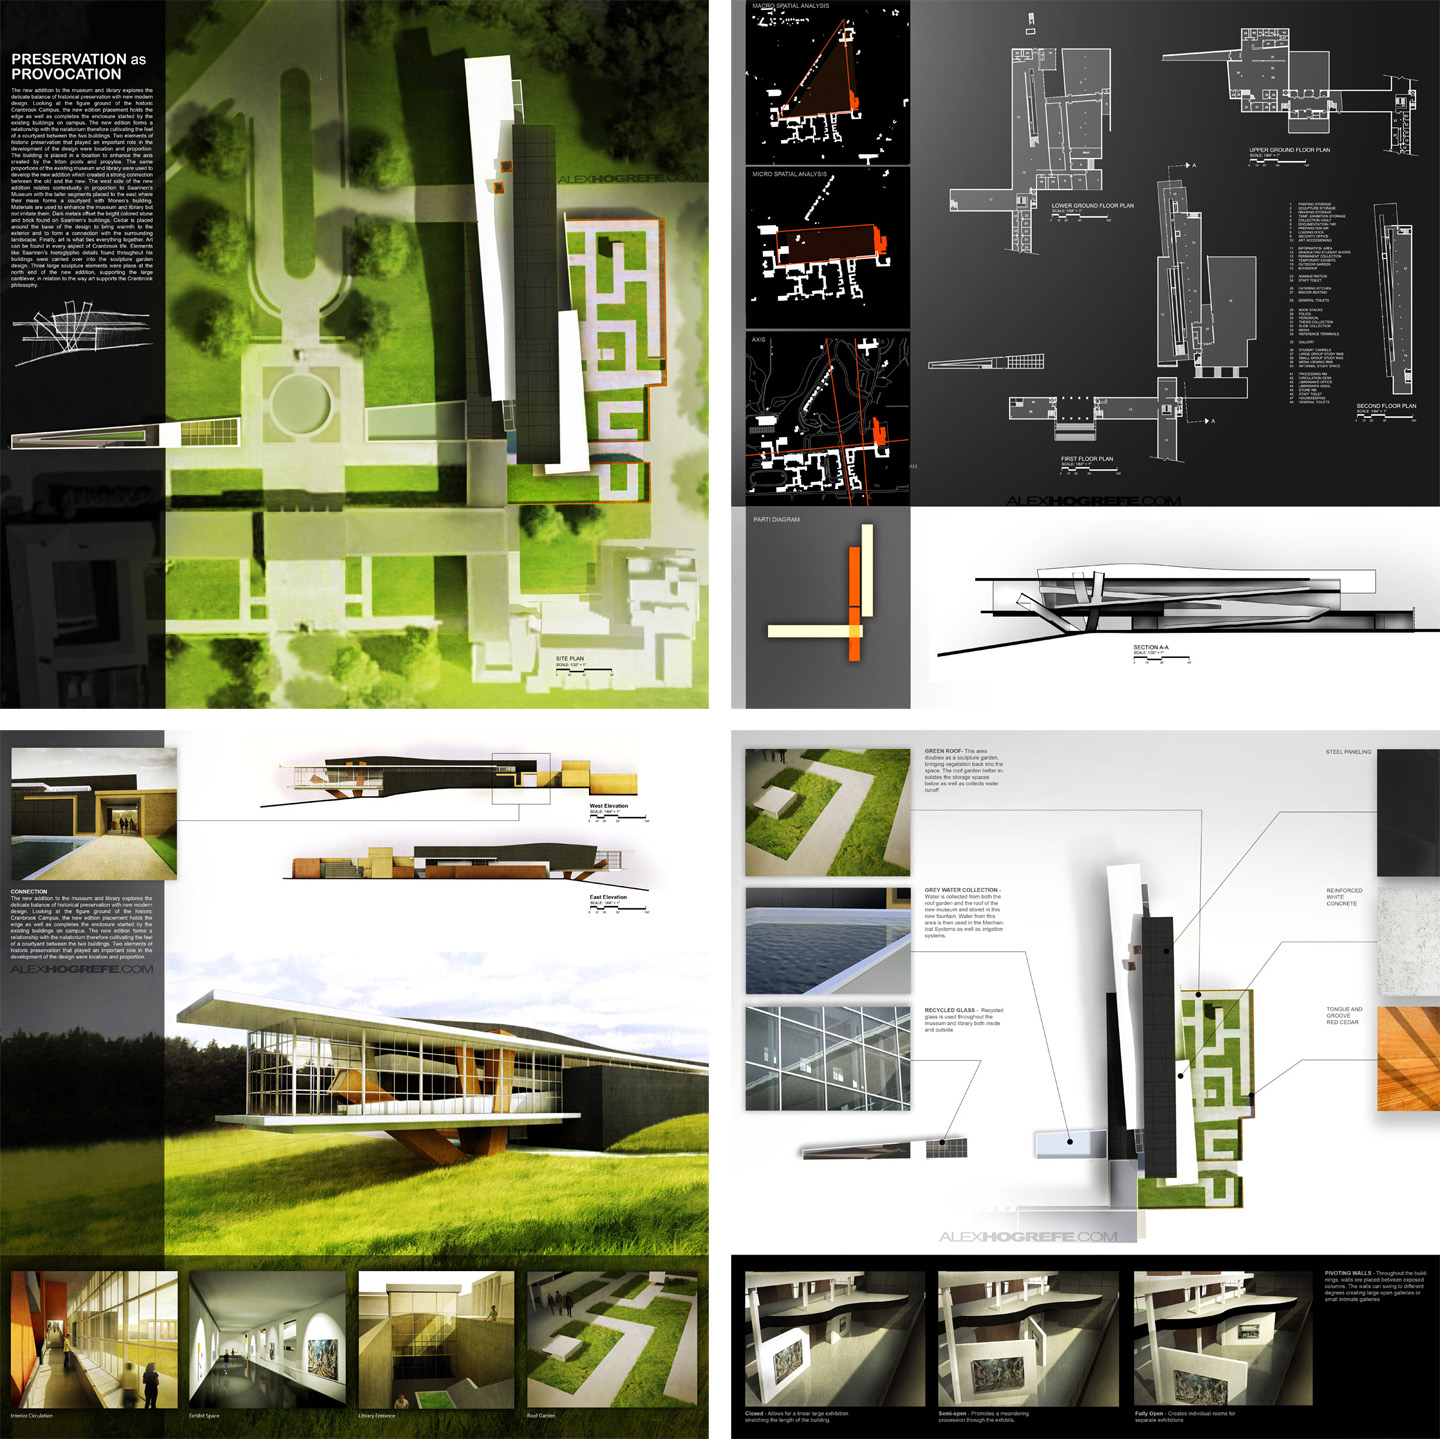 Alex_hogrefe_presentation_board_architecture_compisition